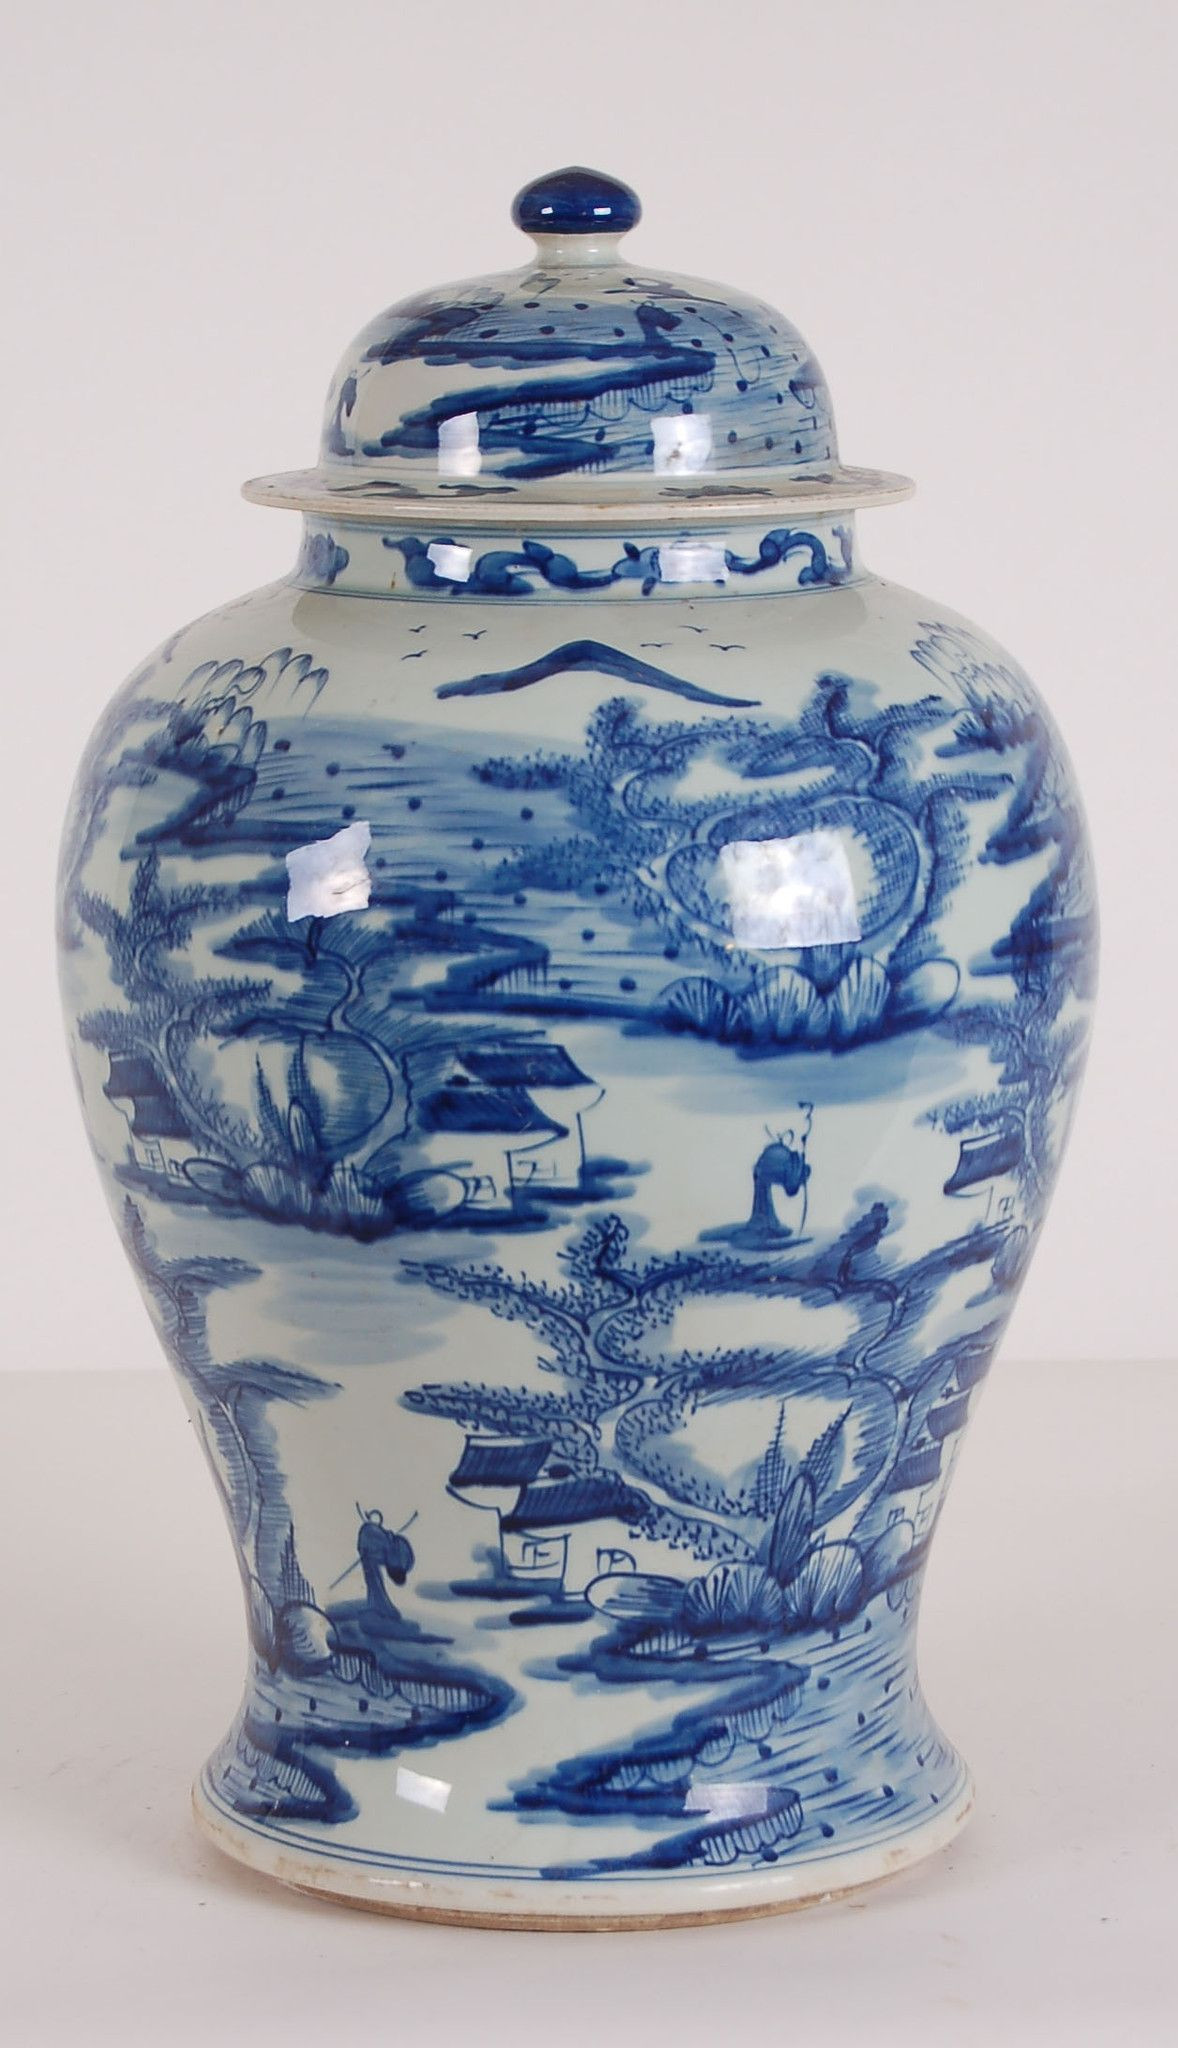 28 Lovable Blue and White Vases wholesale